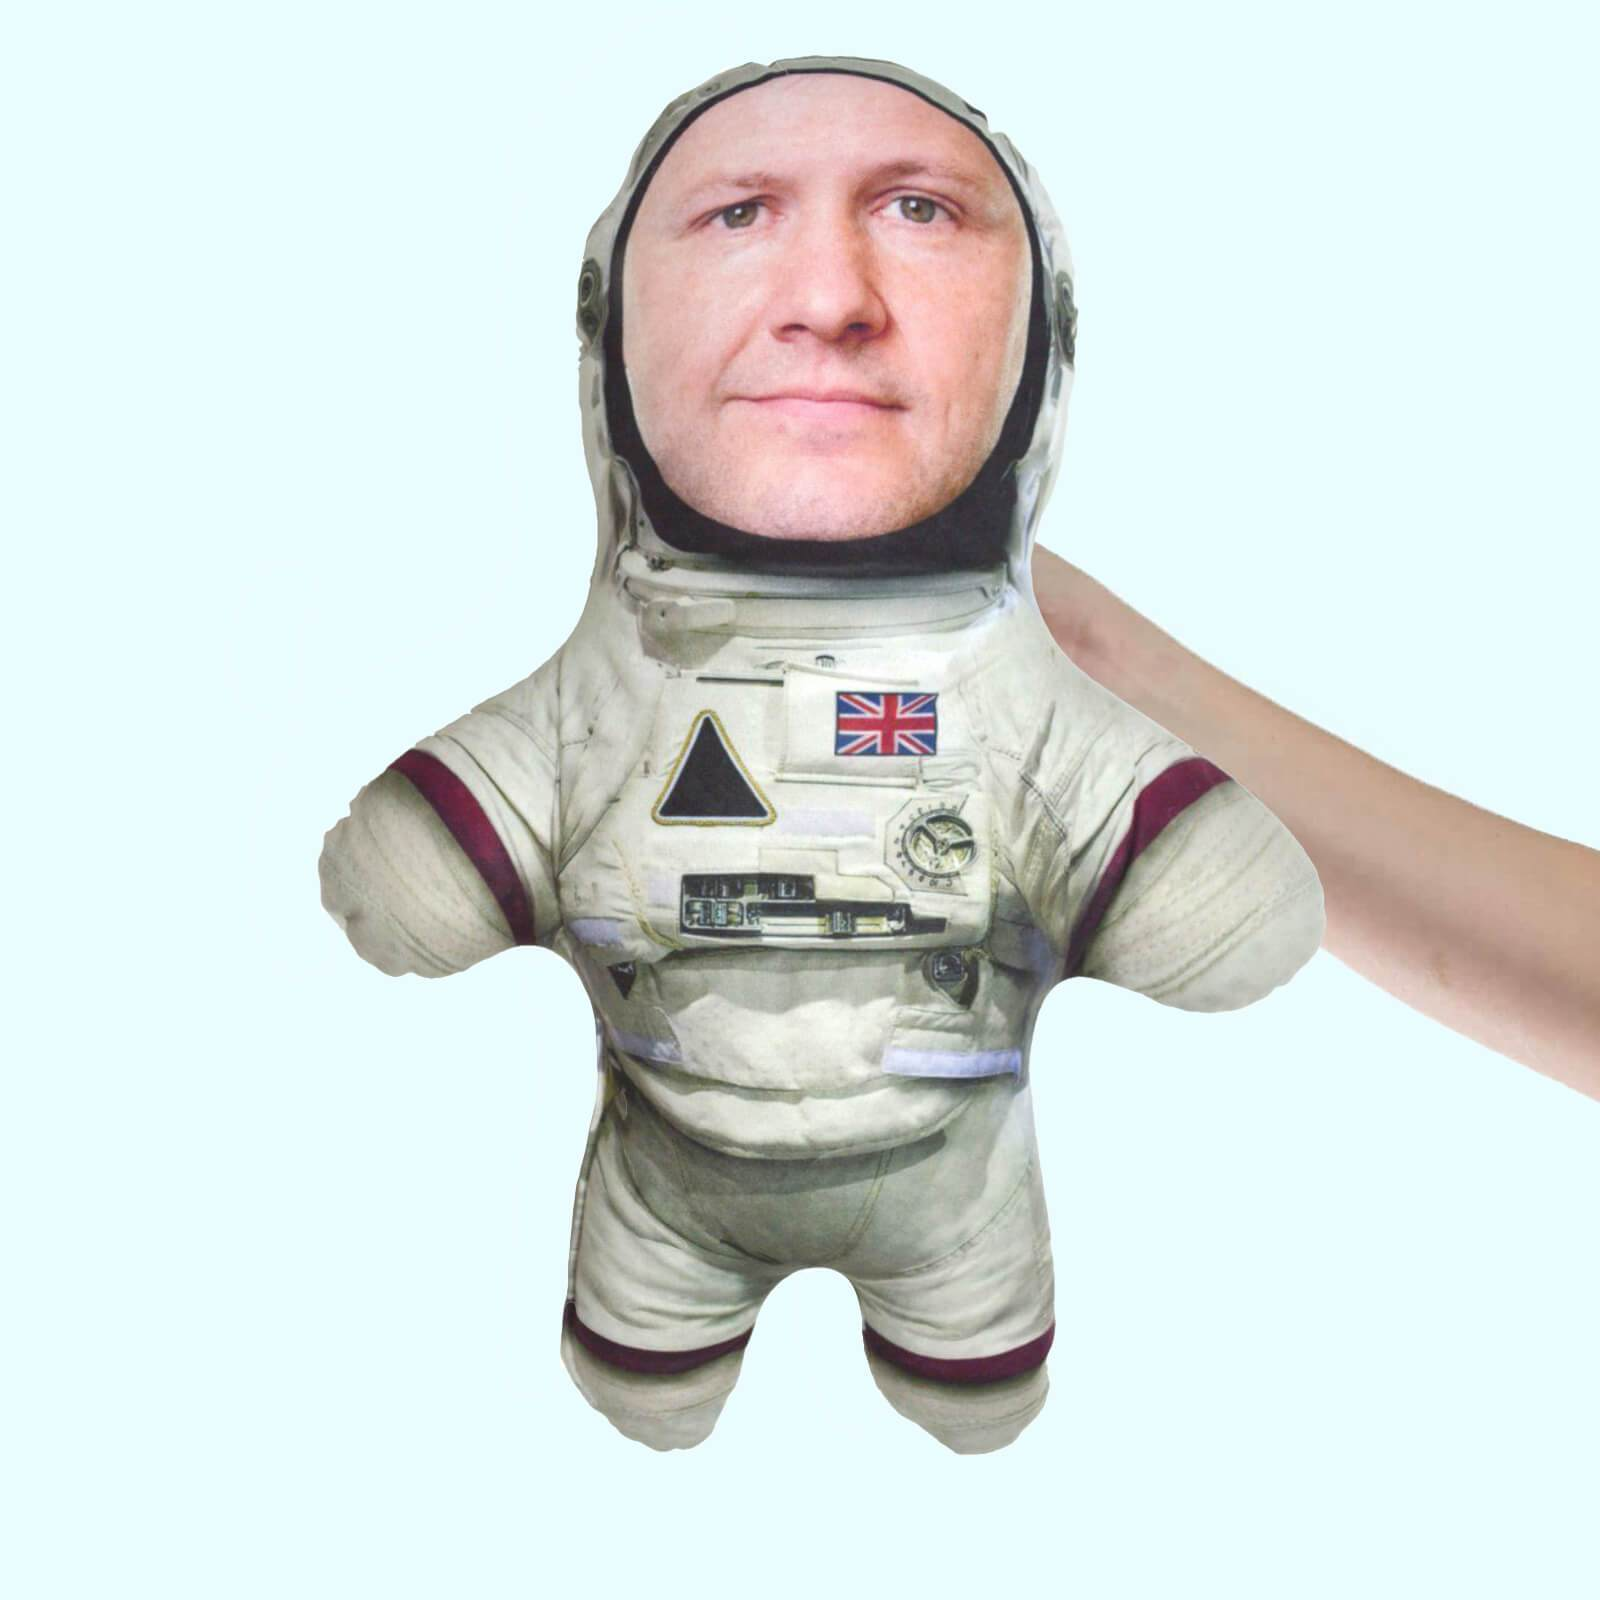 Mini MeAstronaut - UK